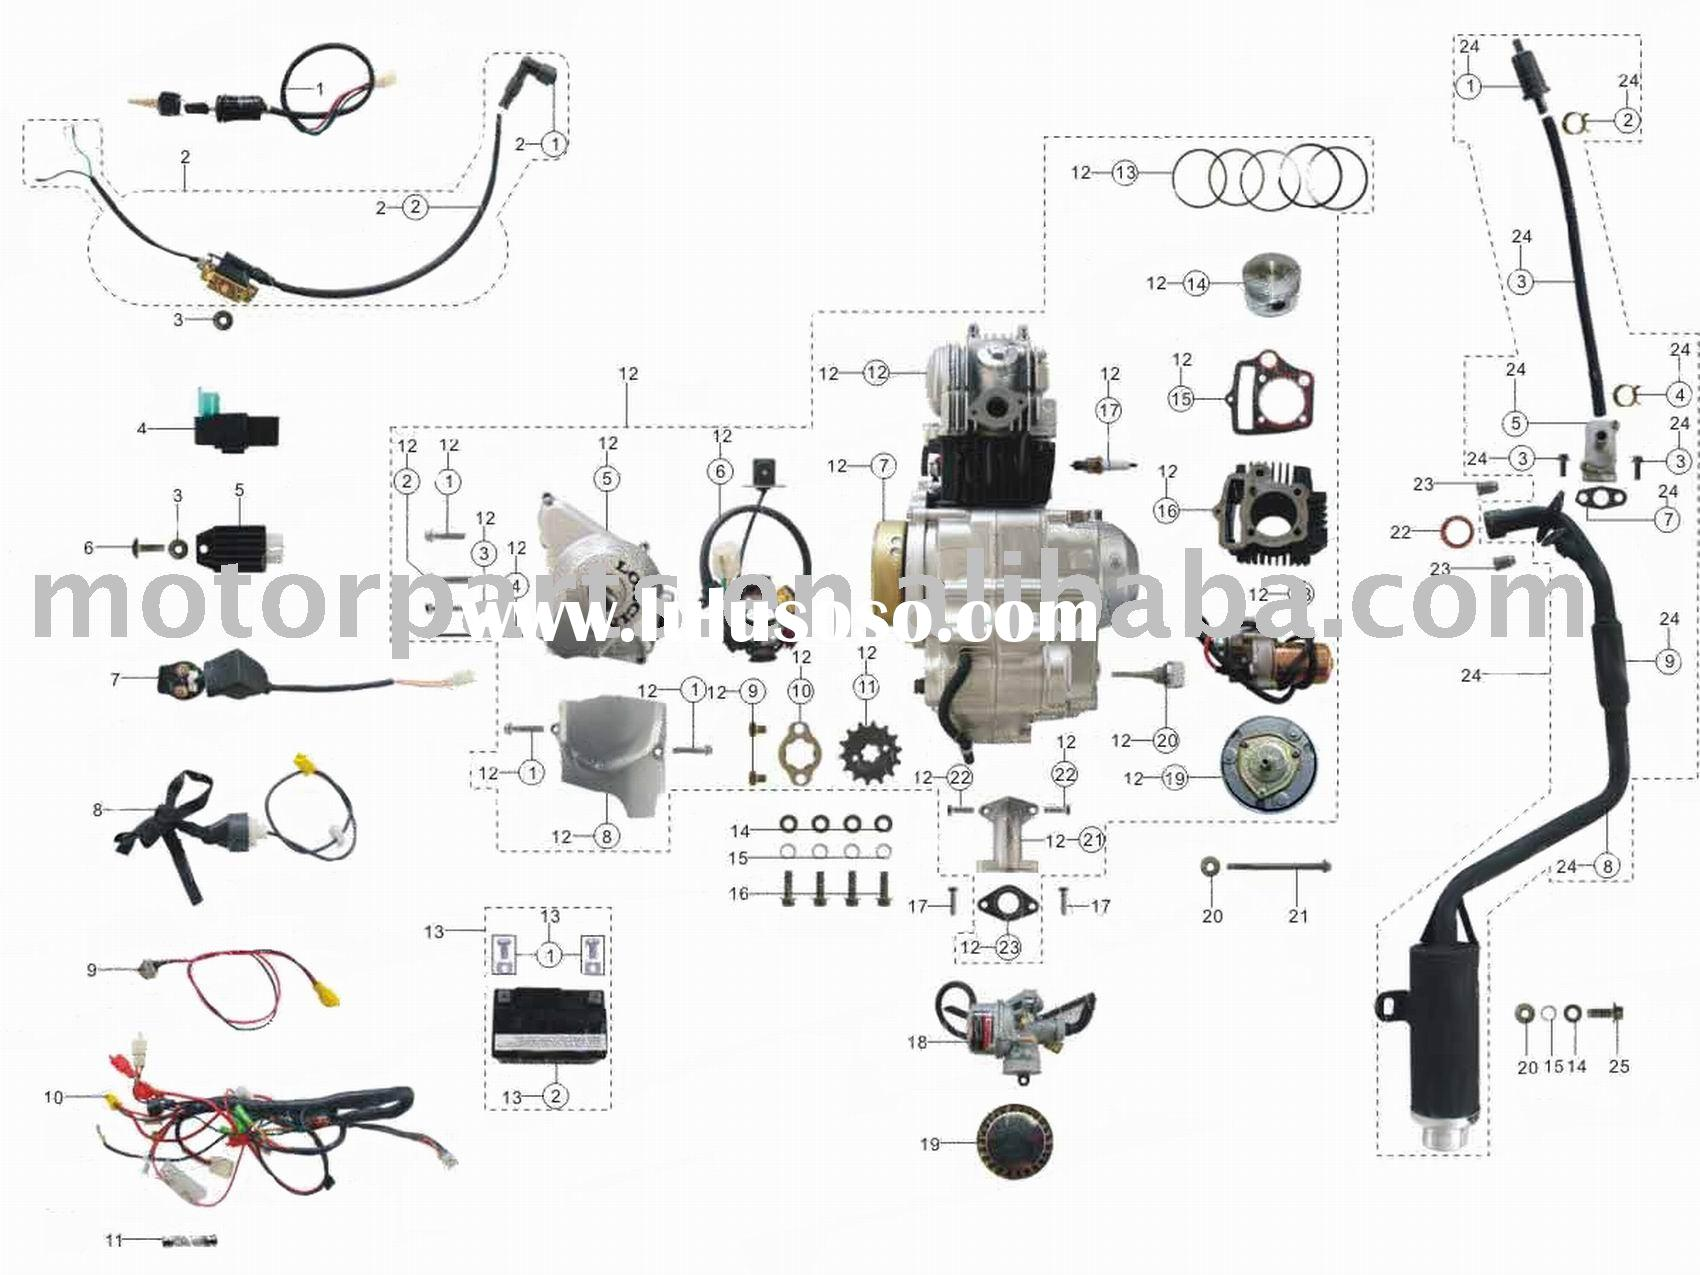 ENGINE_PARTS_110CC_ATV_PARTS_WIRING_ASSY sunl 110cc atv wiring diagram, sunl 110cc atv wiring diagram sunl wiring diagram at bakdesigns.co